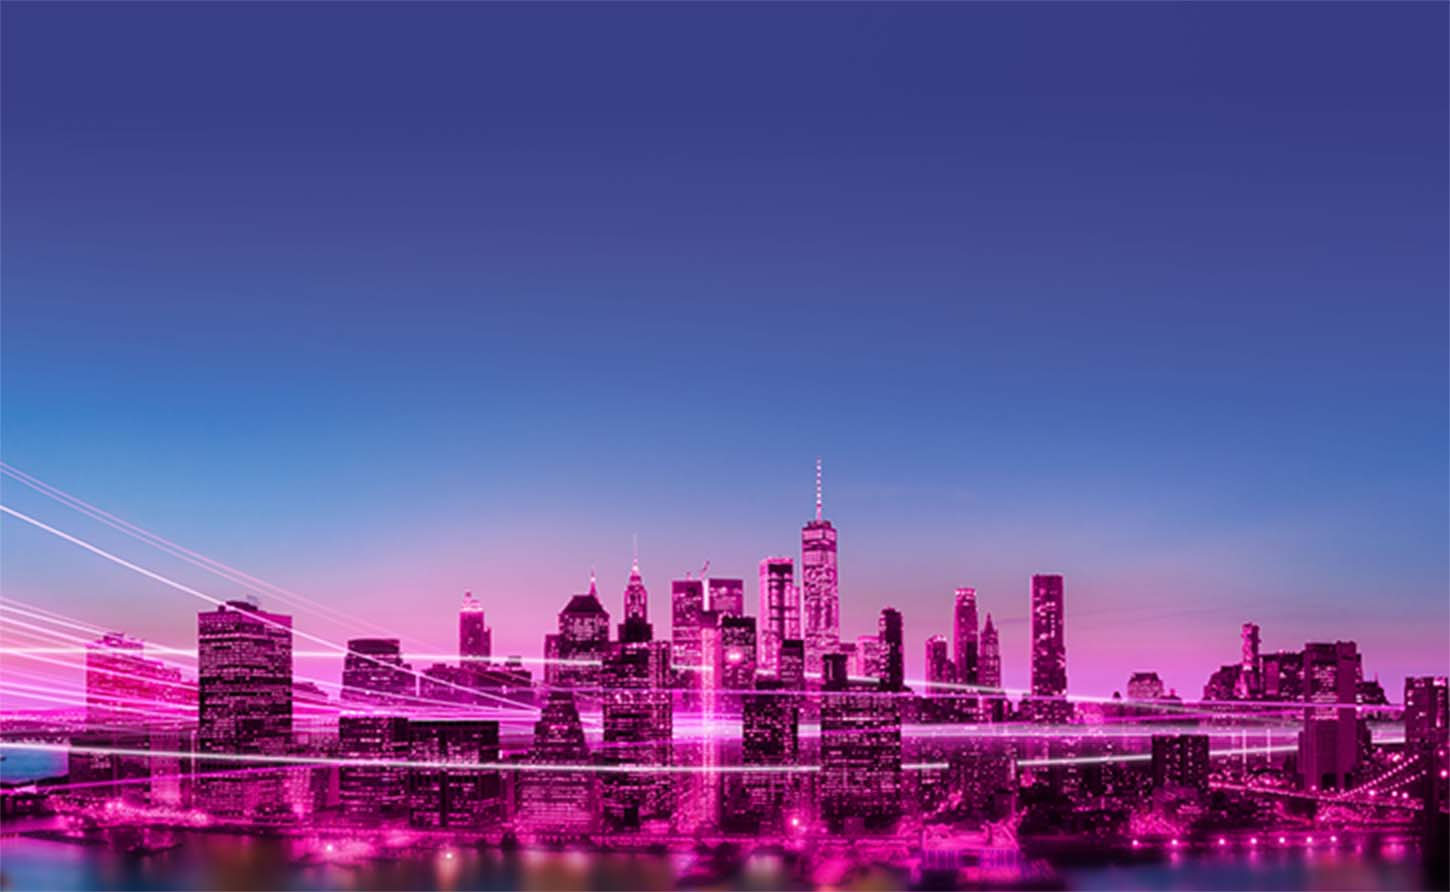 Skyline colored pink with streaks of light flowing through buildings